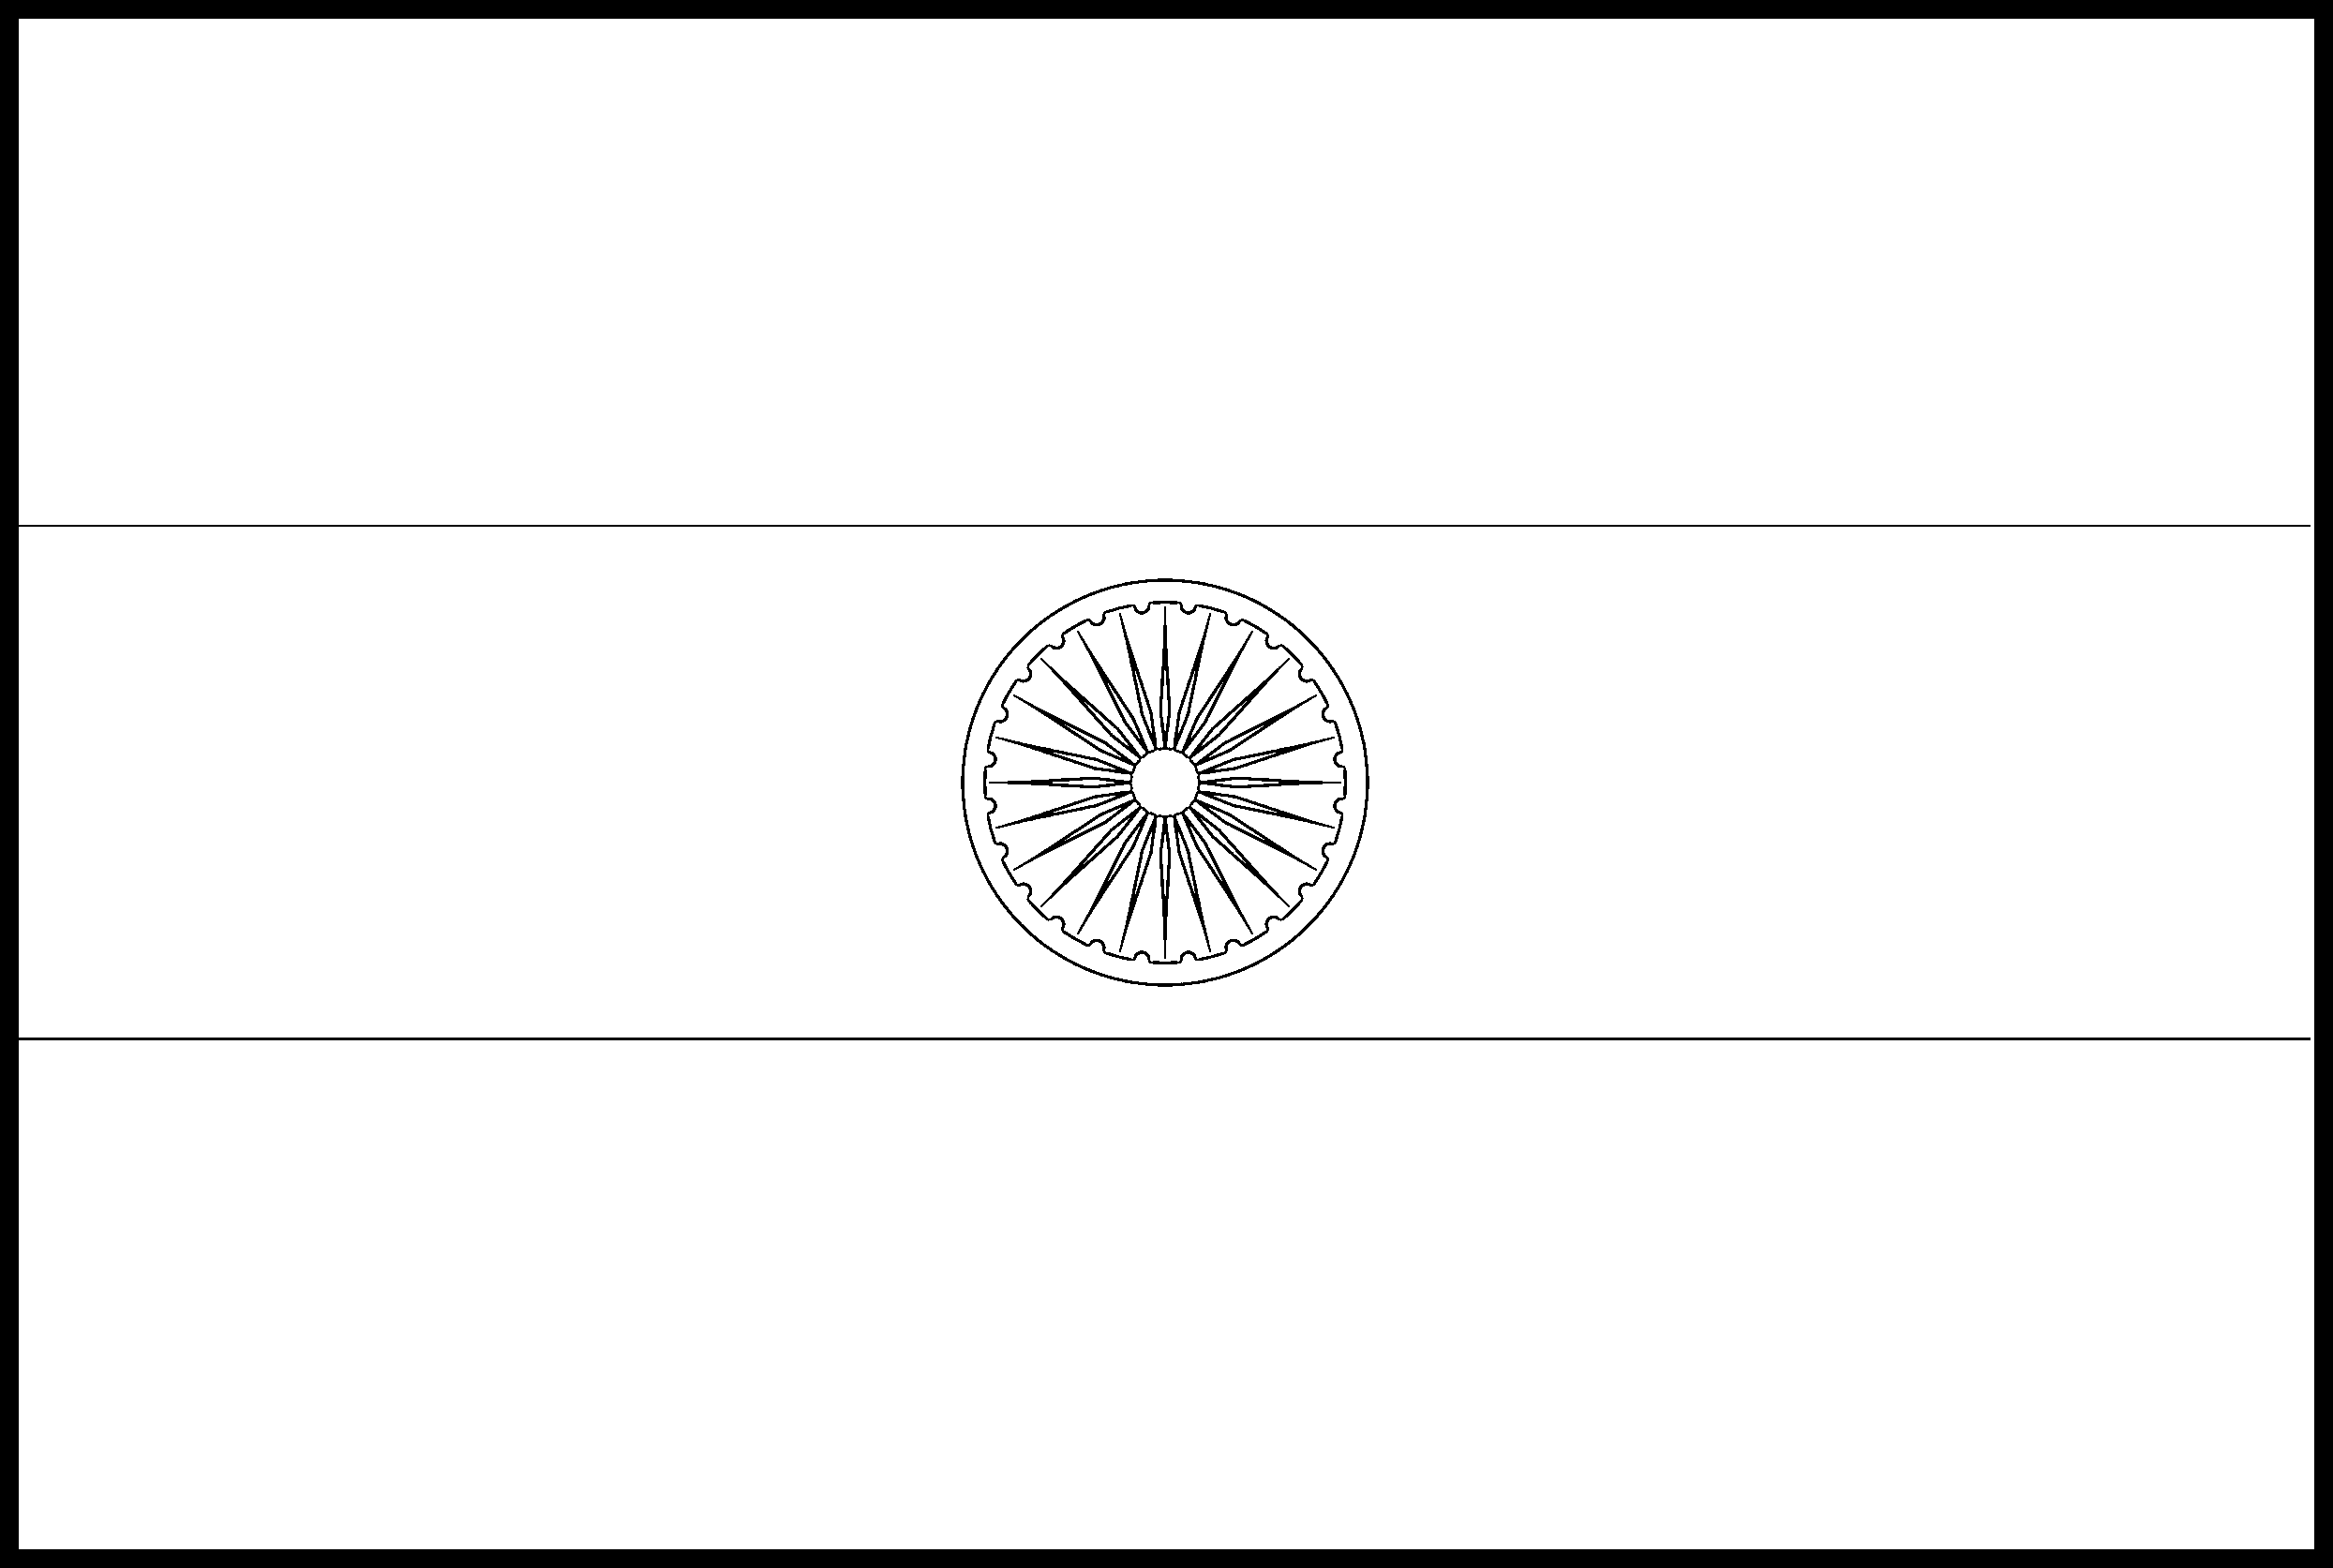 coloring picture of indian flag indian flag page coloring pages indian flag of picture coloring